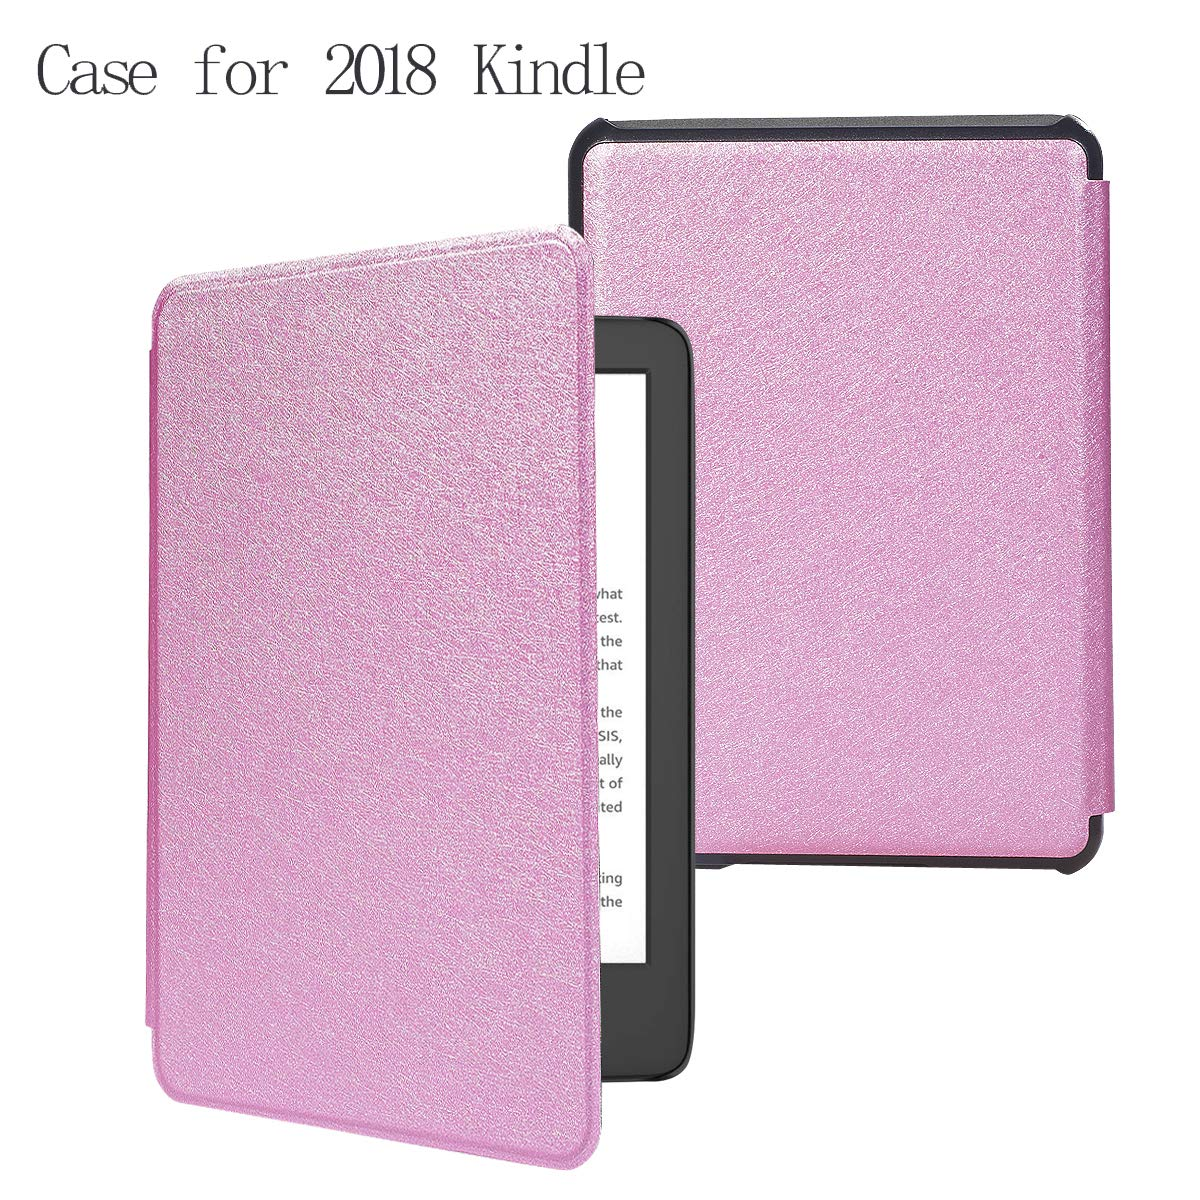 Kindle Paperwhite Cover Case for All-New Kindle Paperwhite (10th Generation, 2018 Release) - Premium Lightweight Cover with Auto Sleep/Wake for Amazon Kindle Paperwhite E-Reader (Rose Gold)